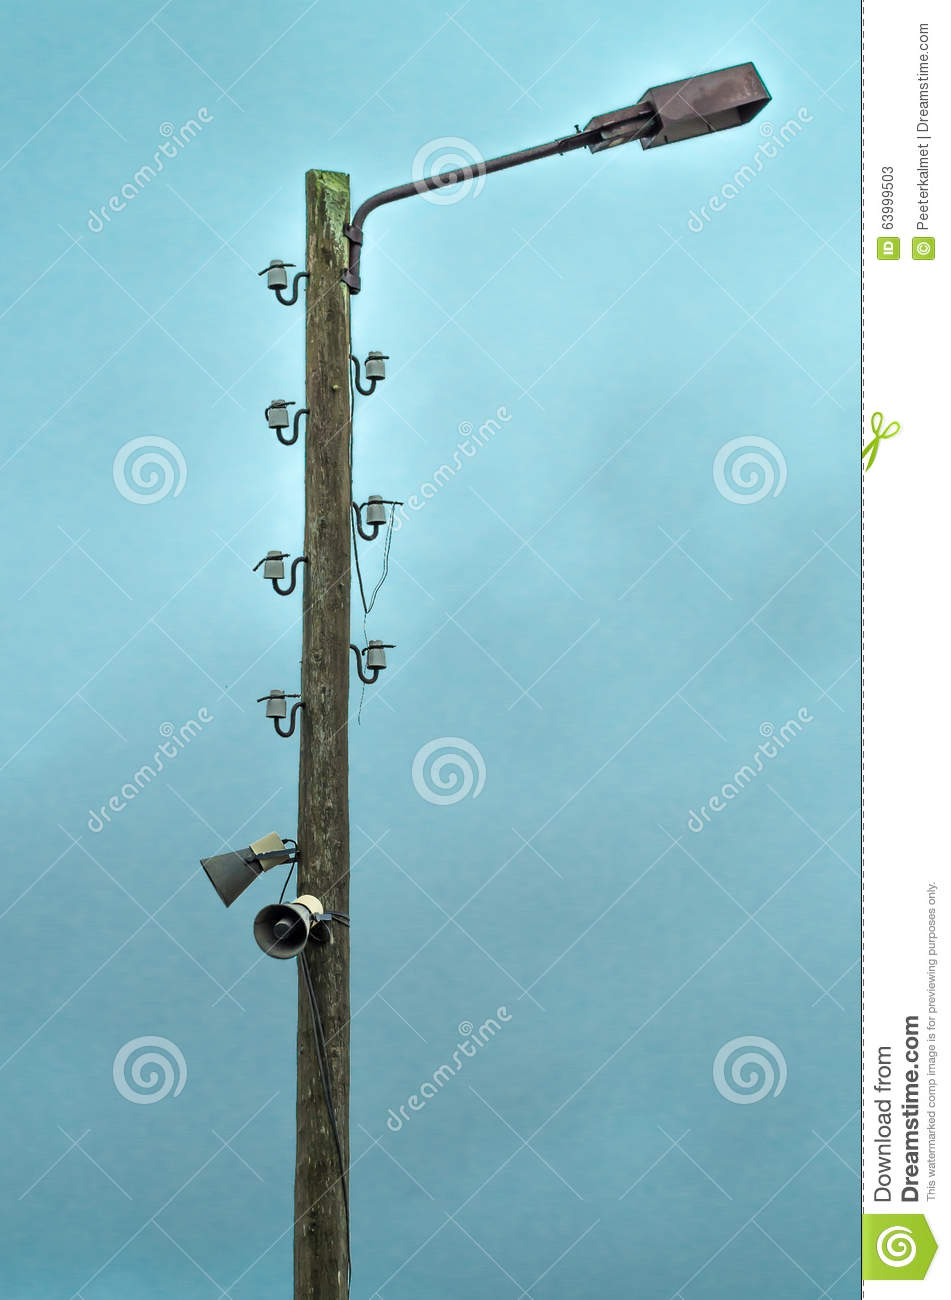 Old Electric Lamp Post With Speakers Stock Image Of Vintage Wiring A New Light Fixture To